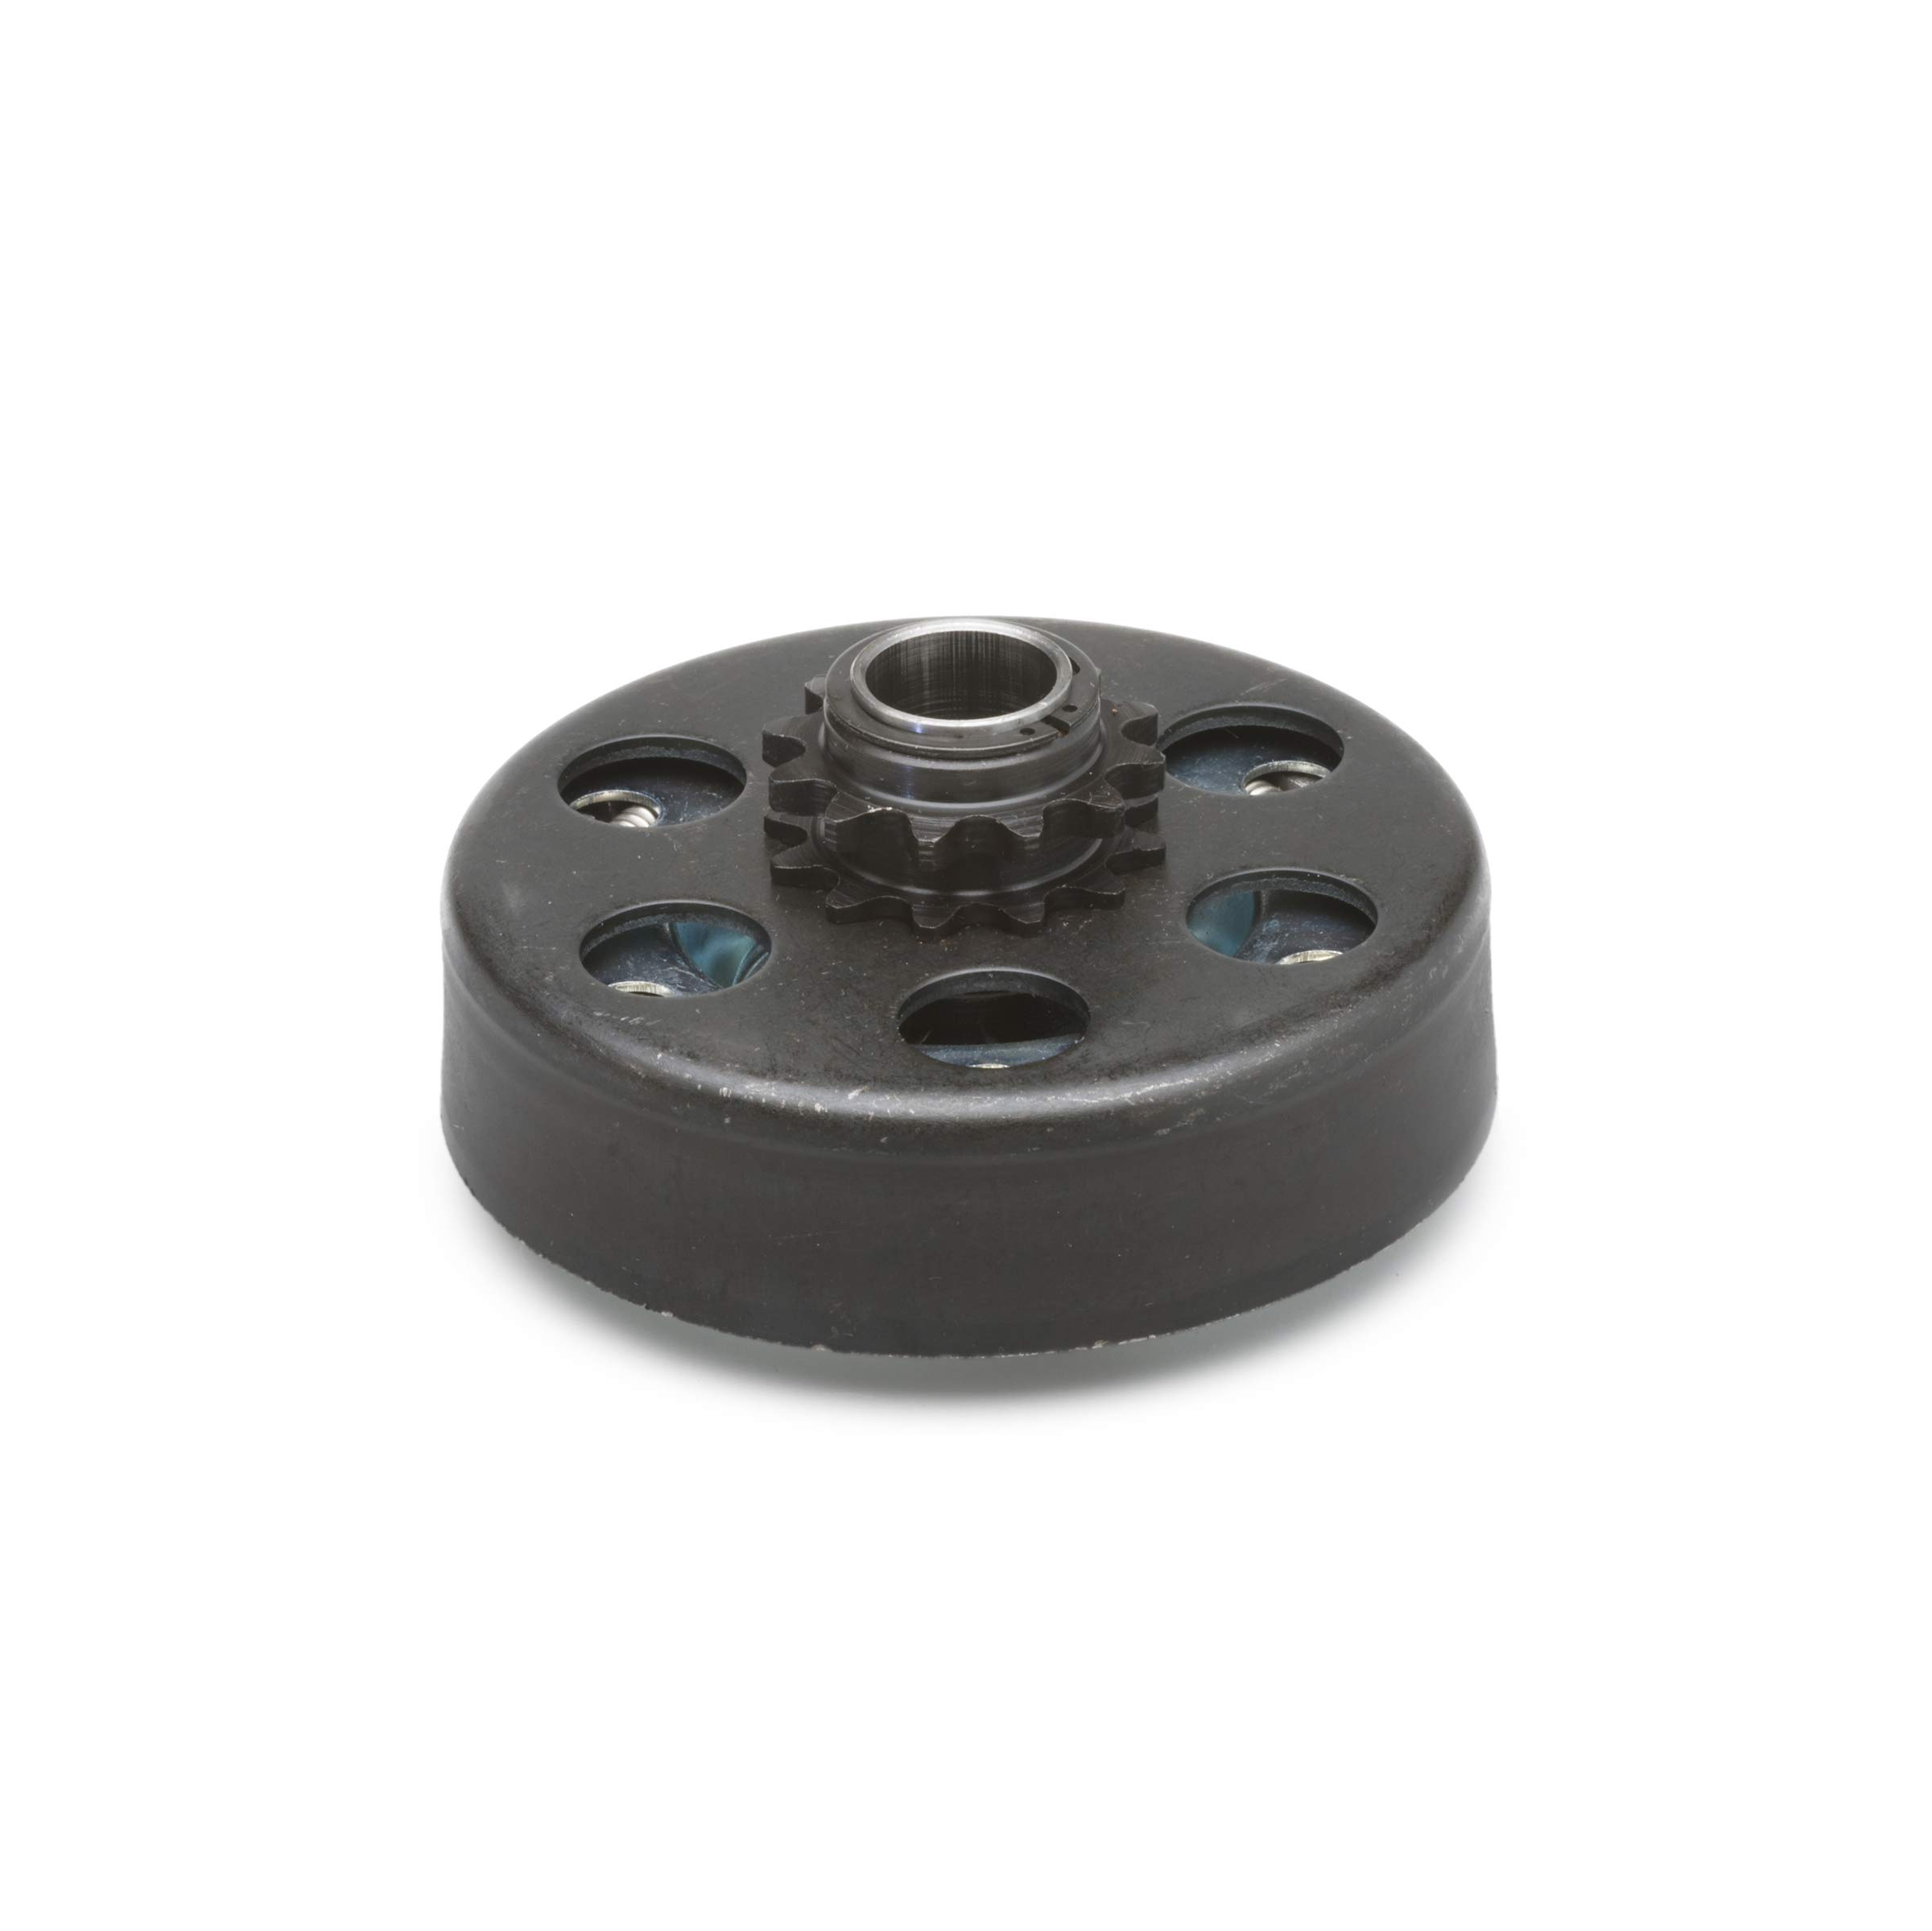 Oregon 84-004 Max Torque Centrifugal Clutch for 4-Cycle Engine Lawn Mower Replacement Part by Oregon